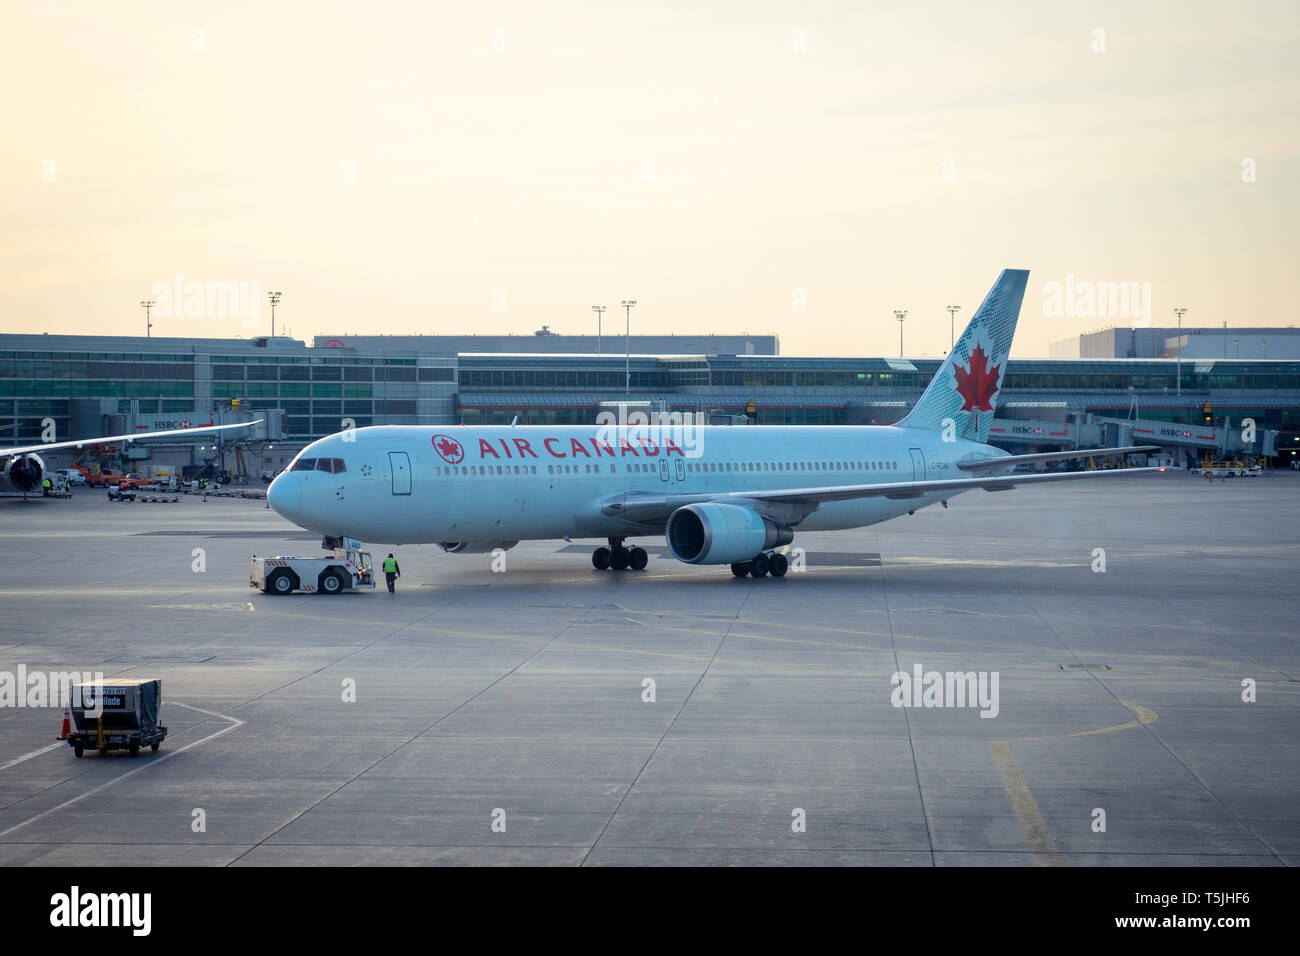 An Air Canada Boeing 767-300ER (763) on the tarmac at Toronto Pearson International Airport (YYZ) in Toronto, Ontario, Canada. Stock Photo